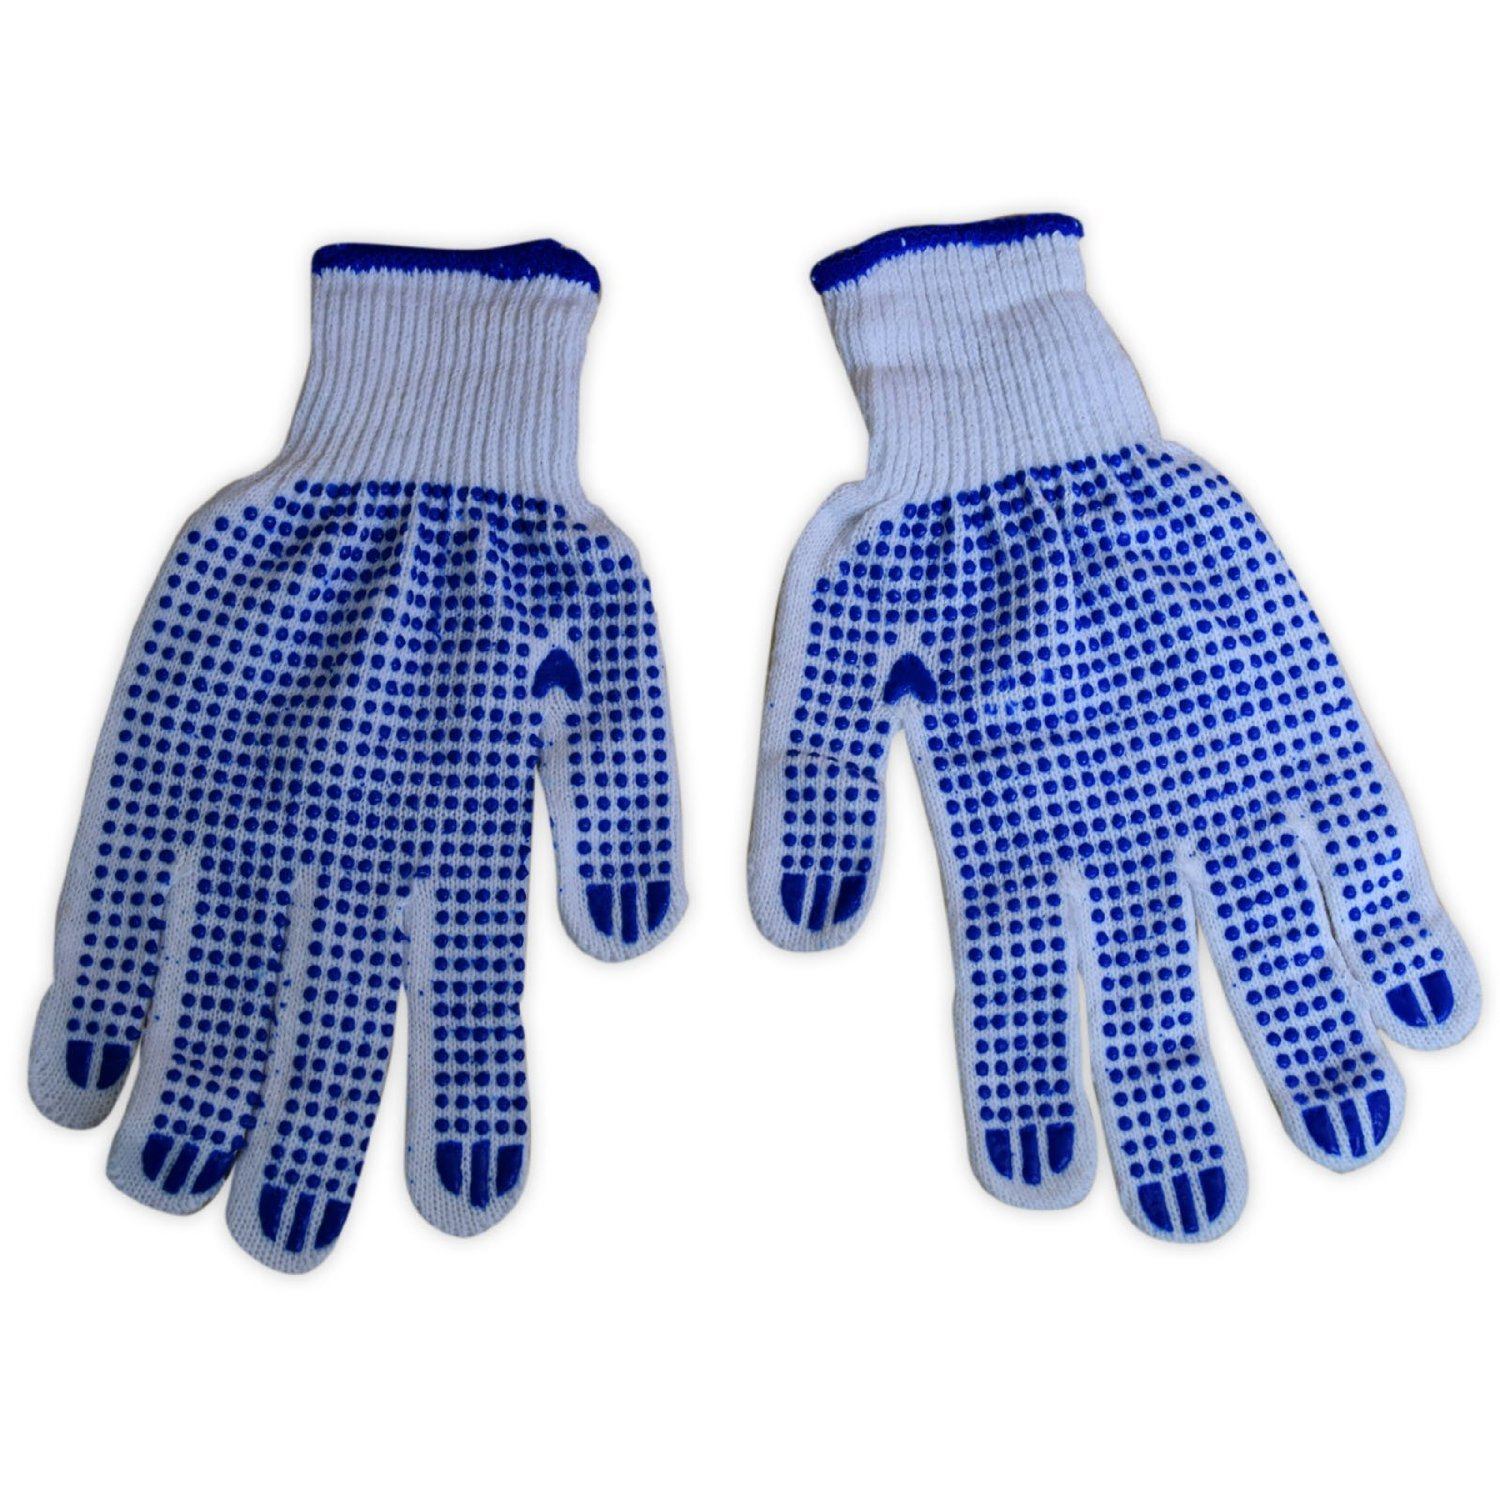 Mens Work Gloves with Palm Grip 2 Pairs